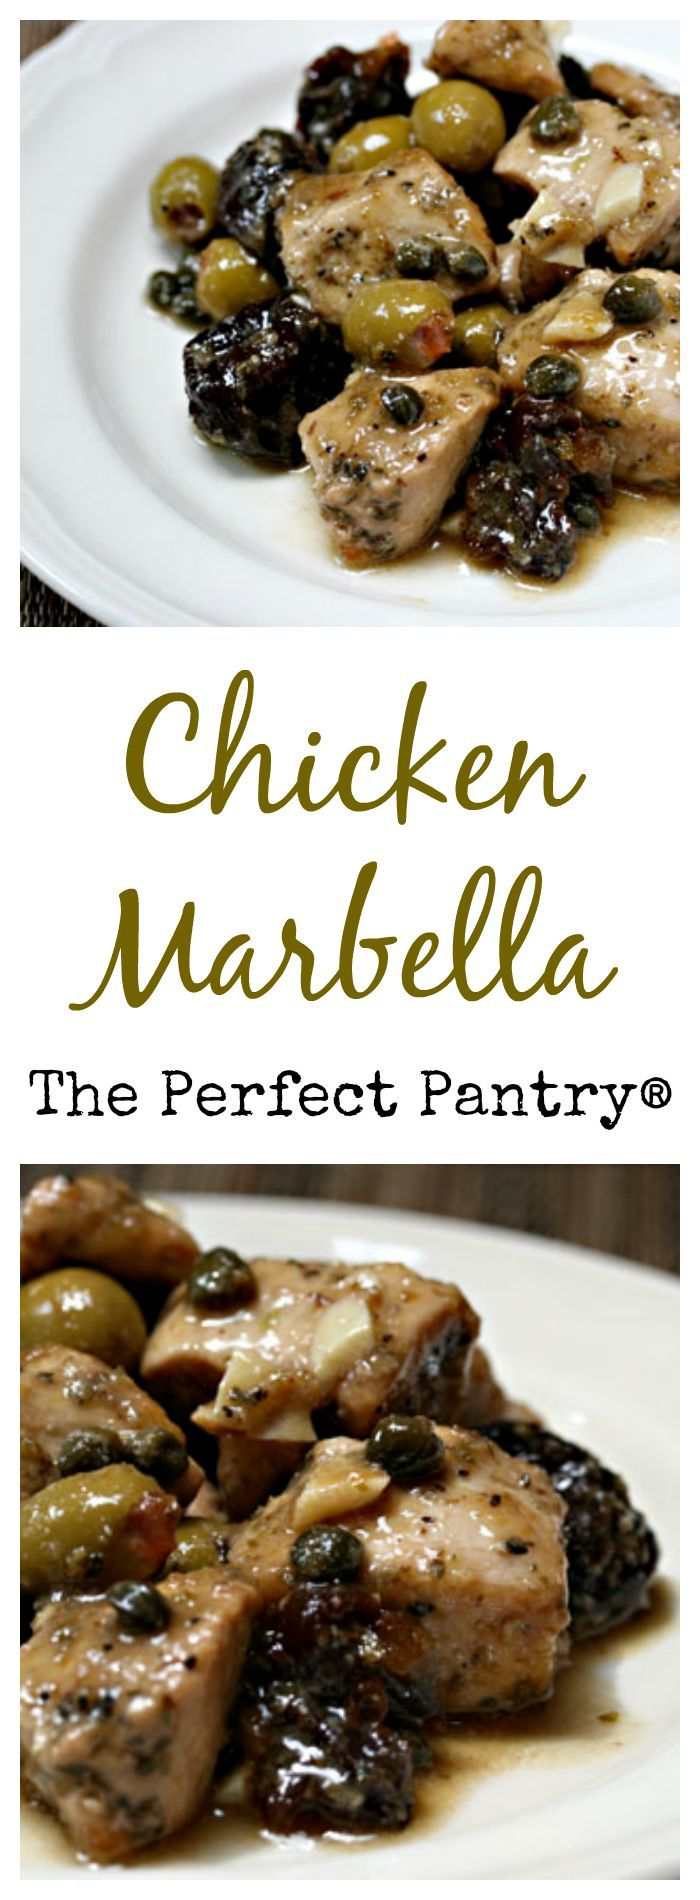 Chicken Marbella, an easy and always impressive party dish, from The Perfect Pantry.